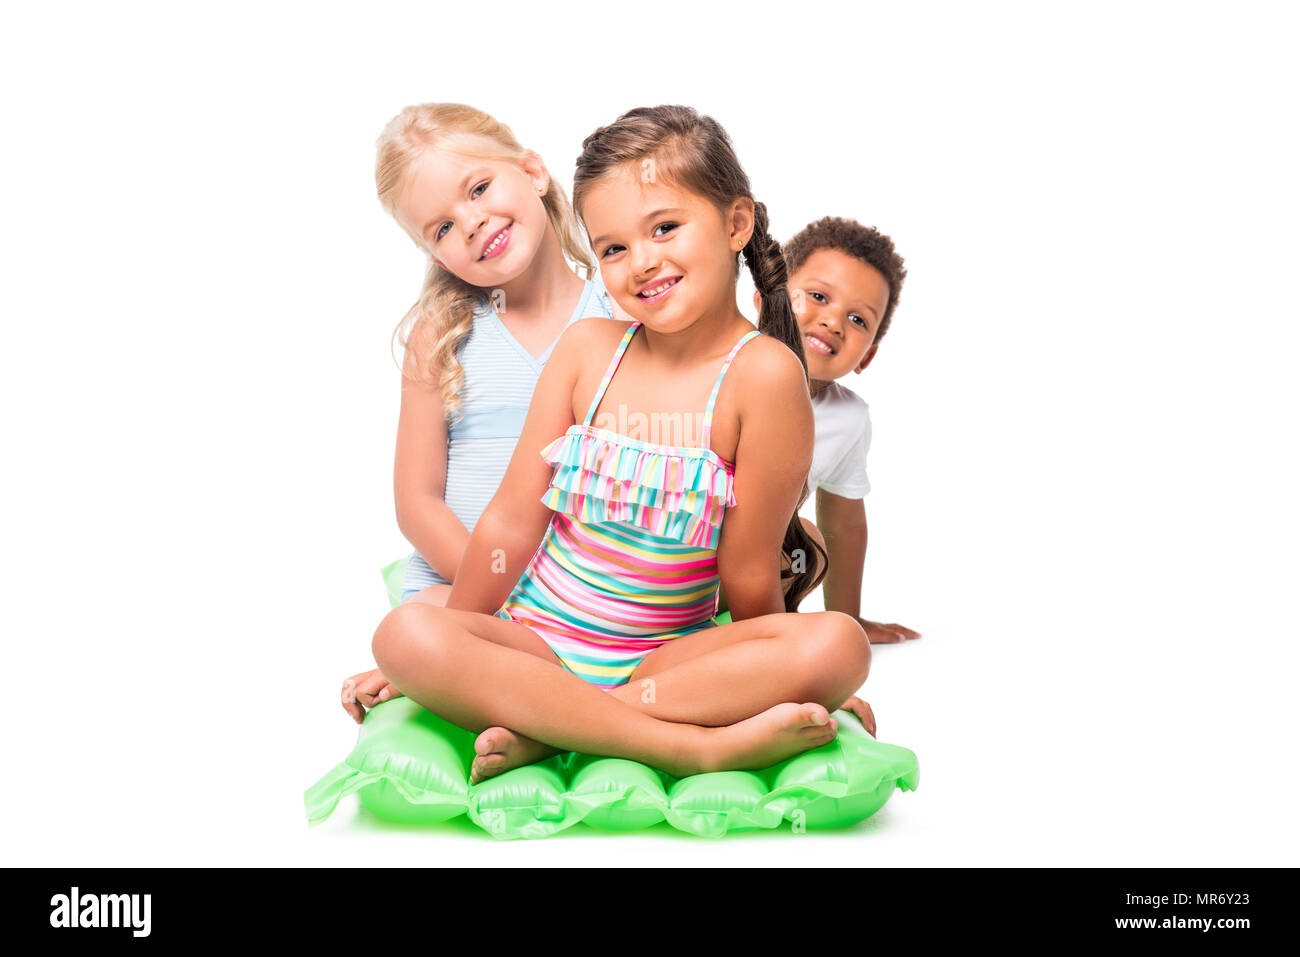 adorable multiethnic kids in swimwear sitting on swimming mattress and smiling at camera - Stock Image